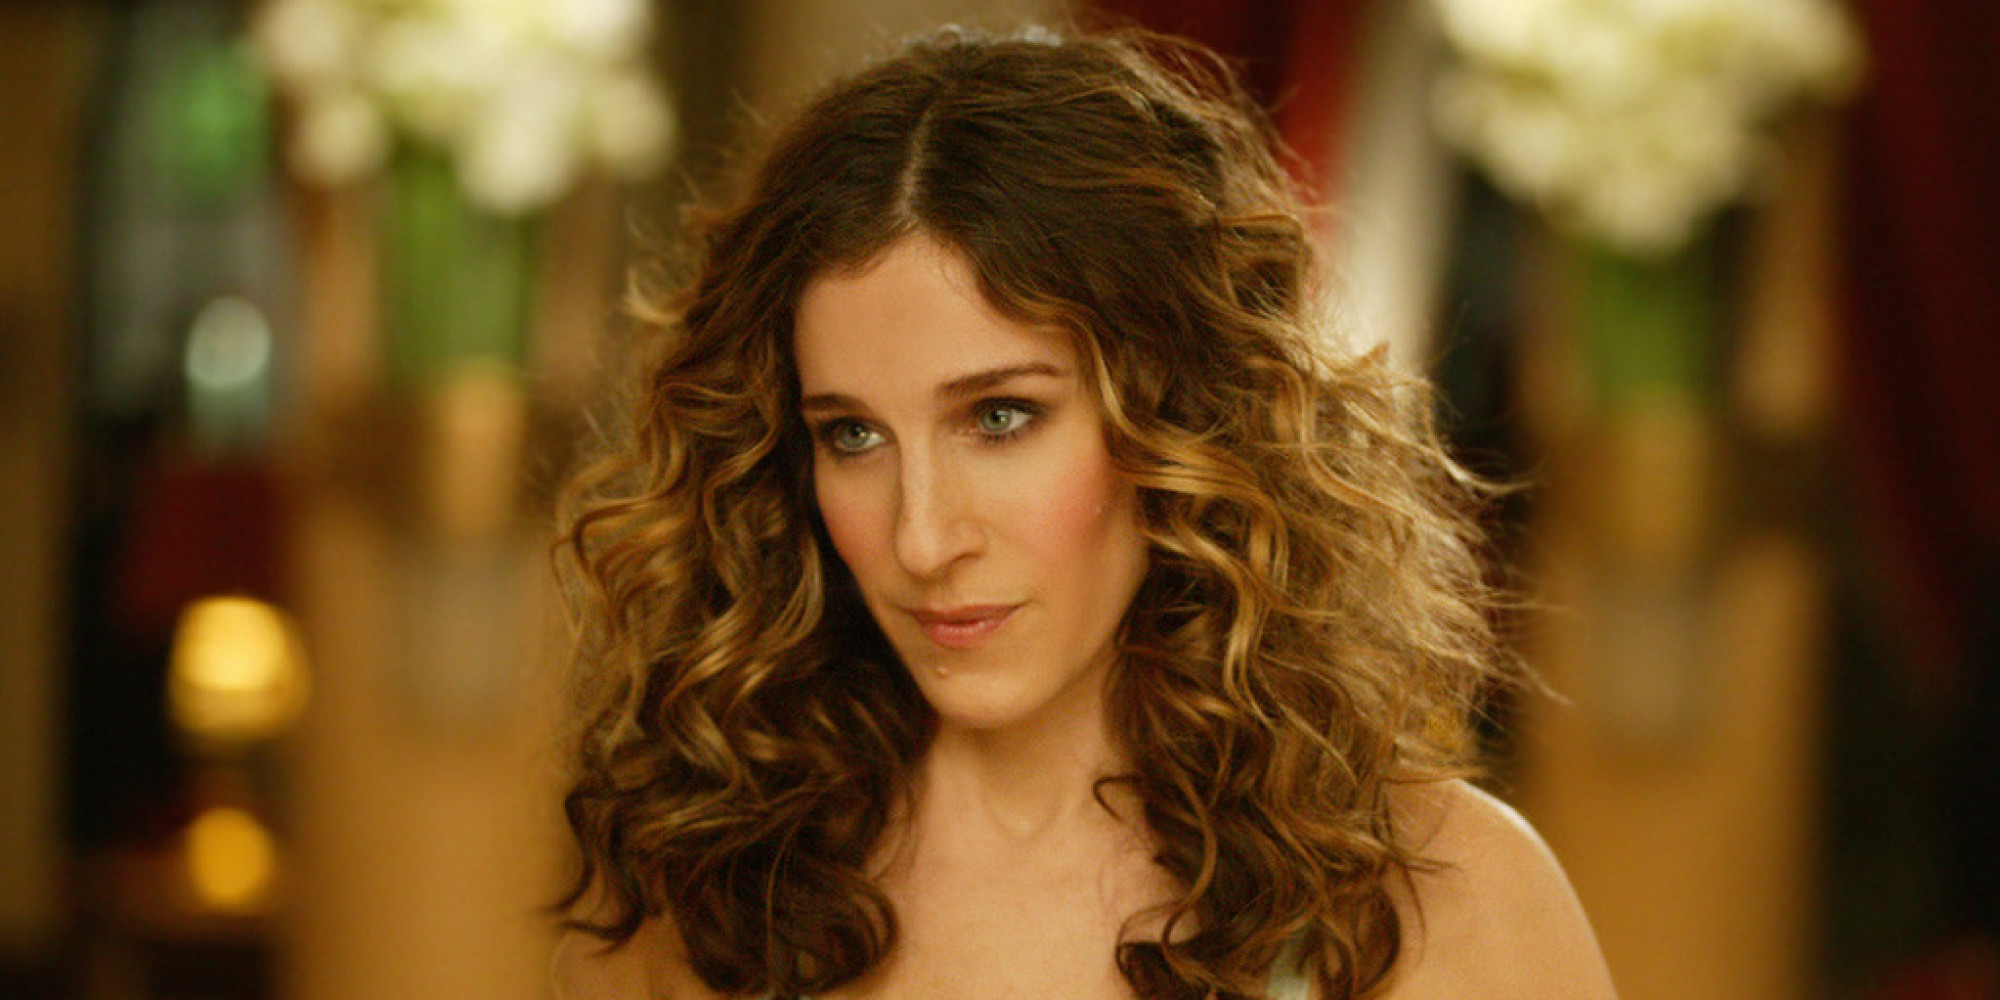 4. Carrie Bradshaw (Sex and the City). She is seriously one of the most irresponsible spenders. From cab rides to shoe collections, it's just too much.